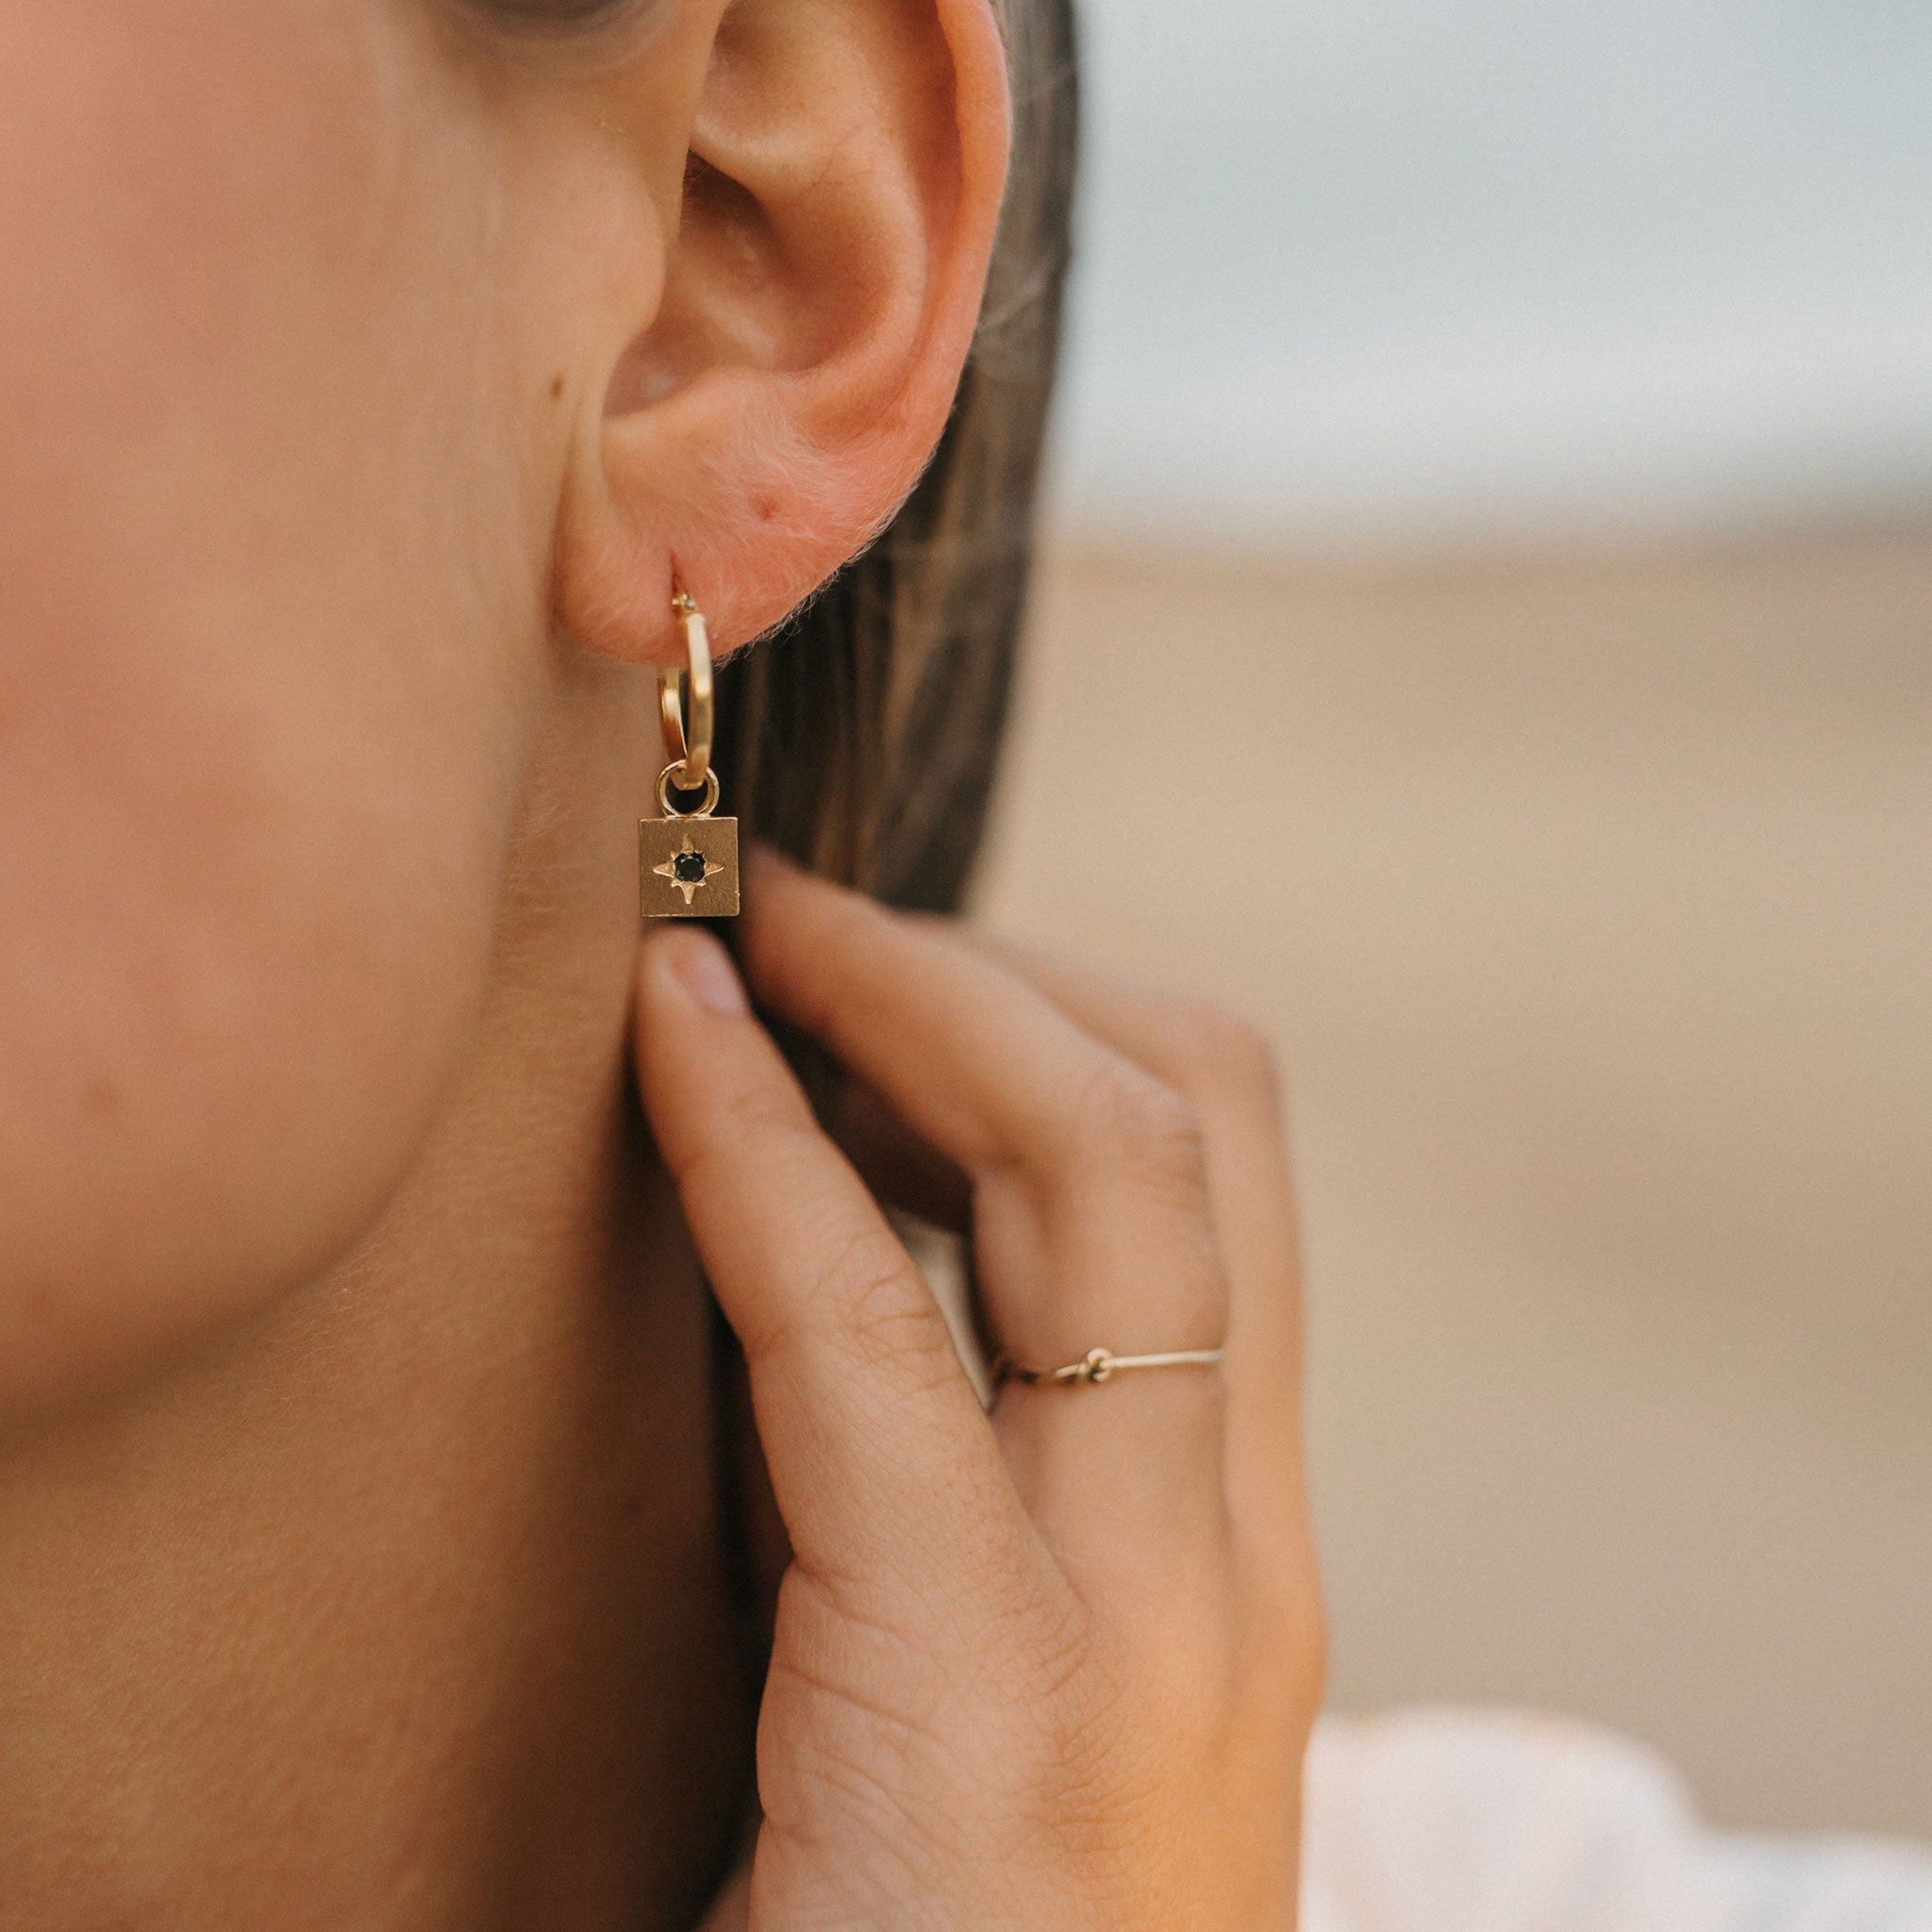 Wanderlust Life jewellery, gold hoop earring with black diamond. Black diamond gemstone falling from a 14k gold fill hoop. Wanderlust Life jewellery handmade in the UK.